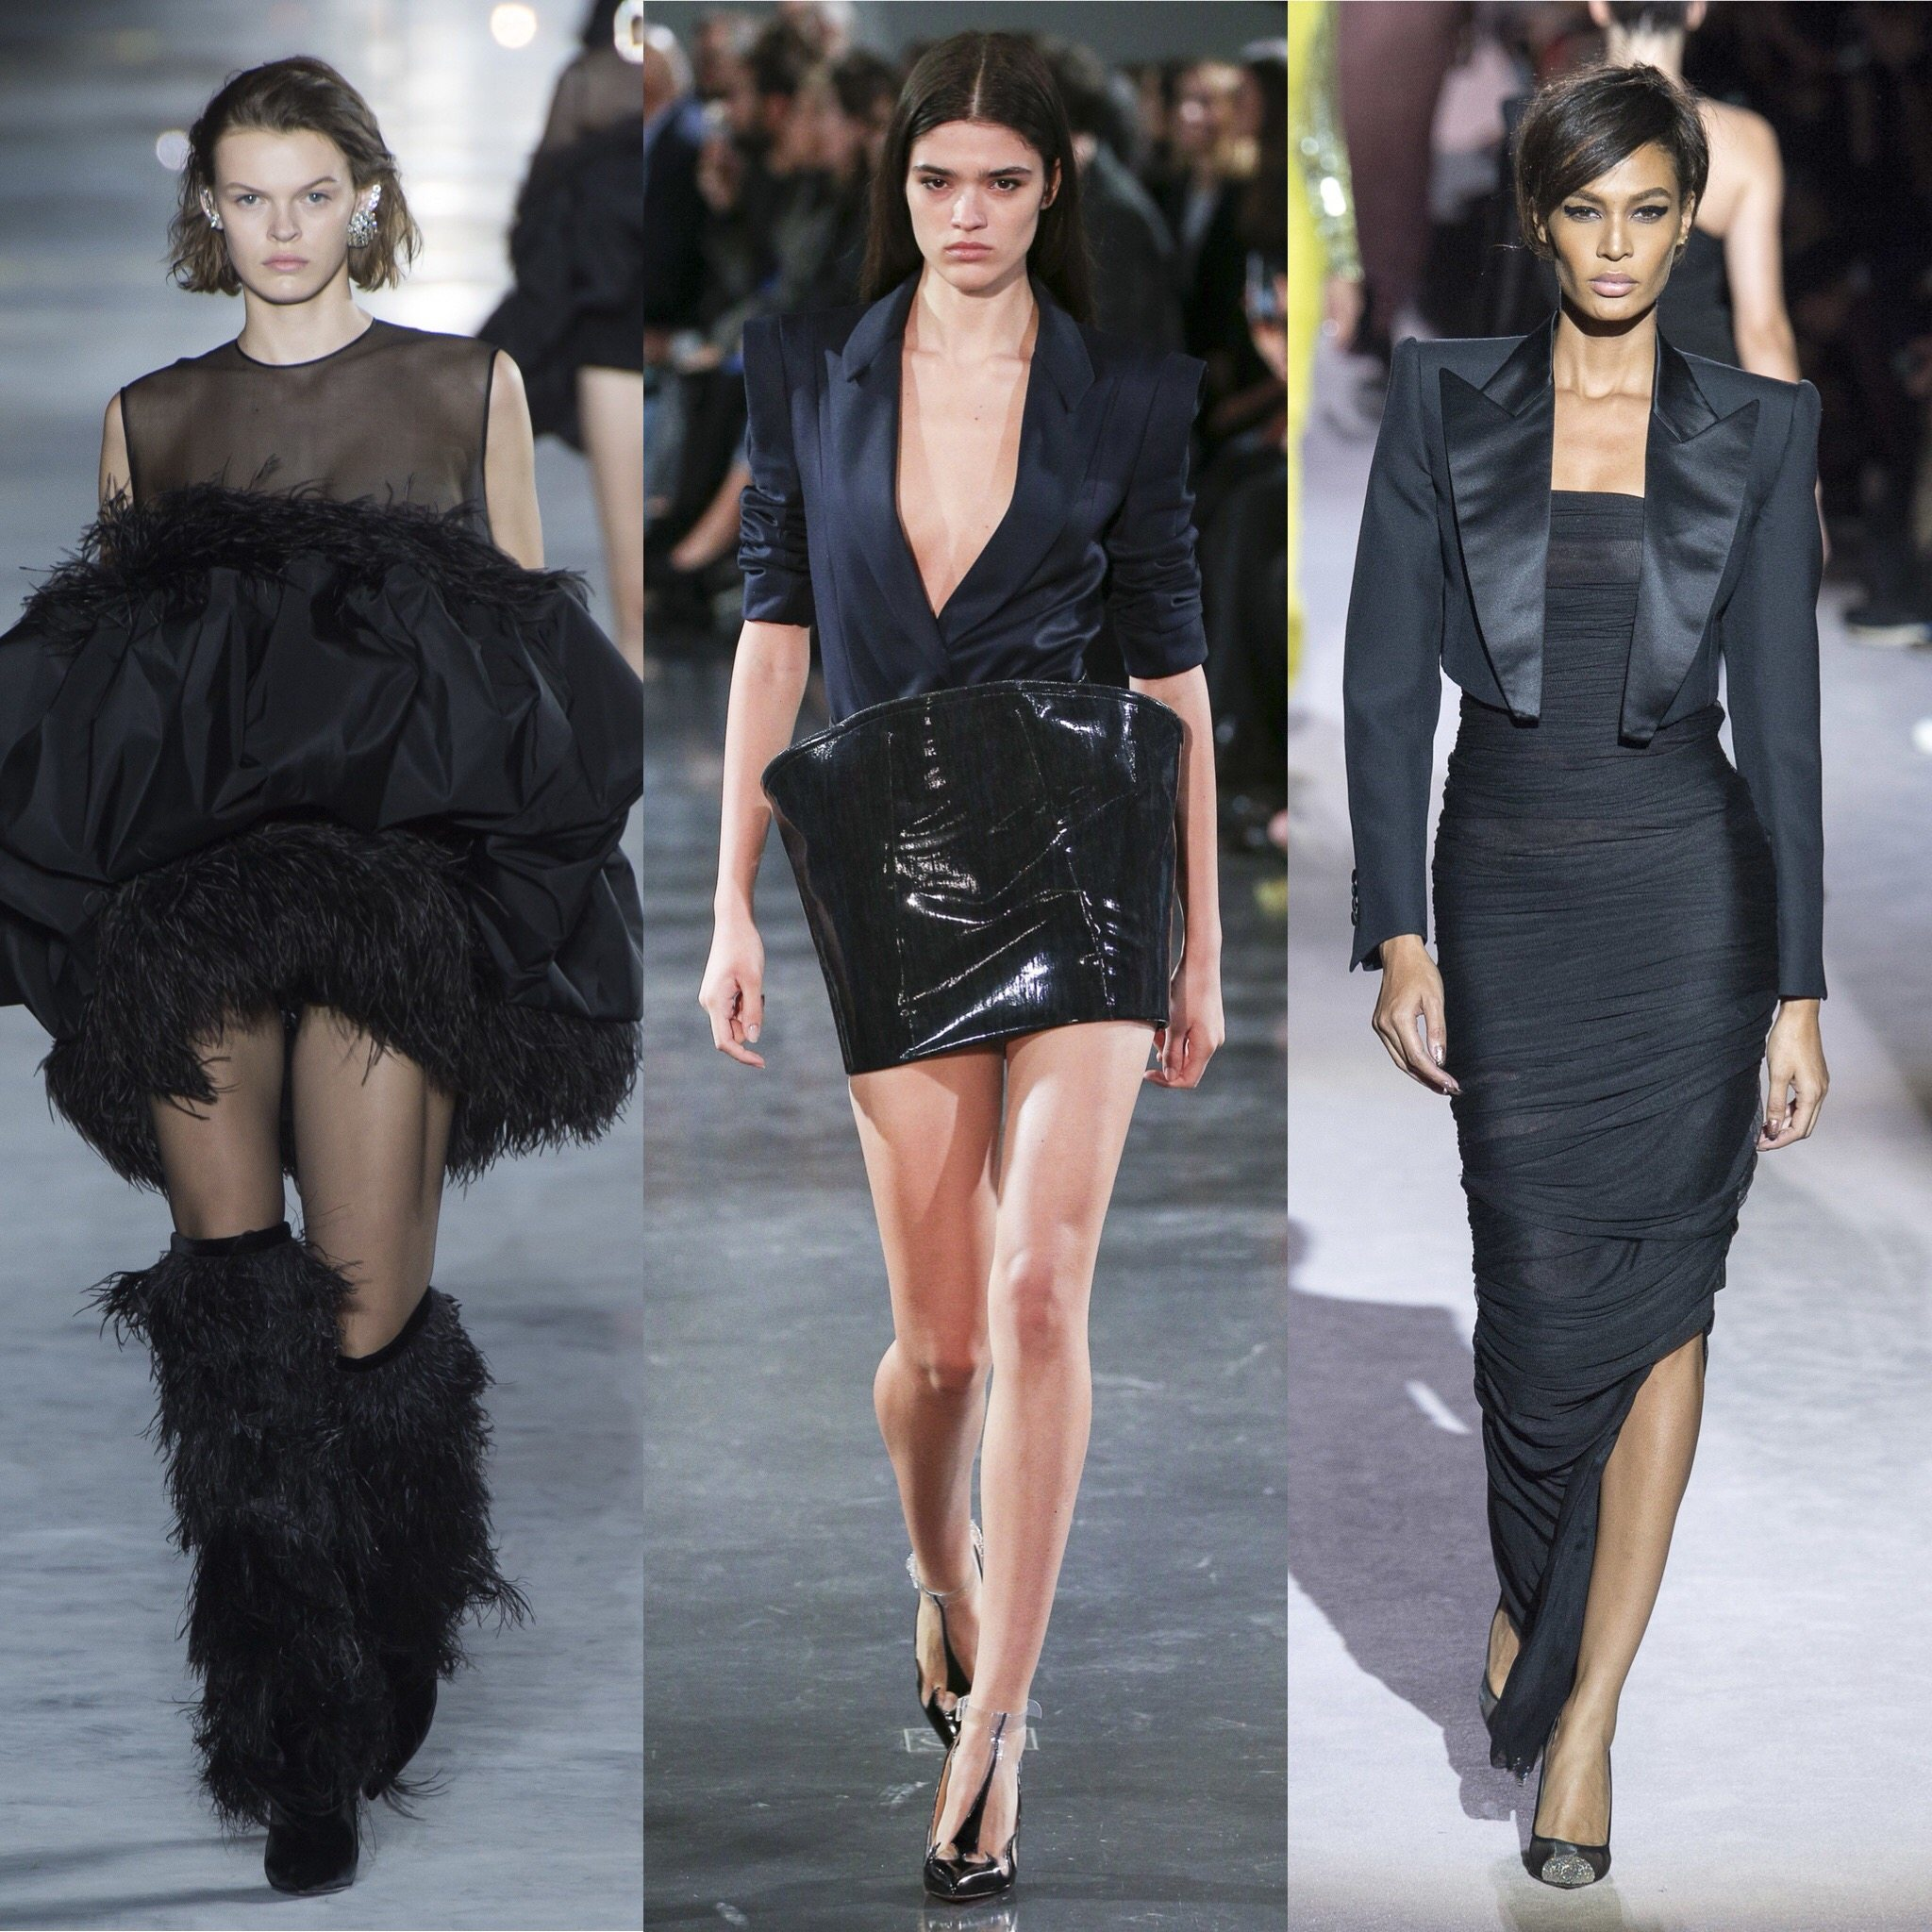 Spring 2018 Trends: Fashion Week coverage - Black Monochrome - Saint Laurent - Mugler - Tom Ford. More on Houseofcomil.com. Pictures from Vogue